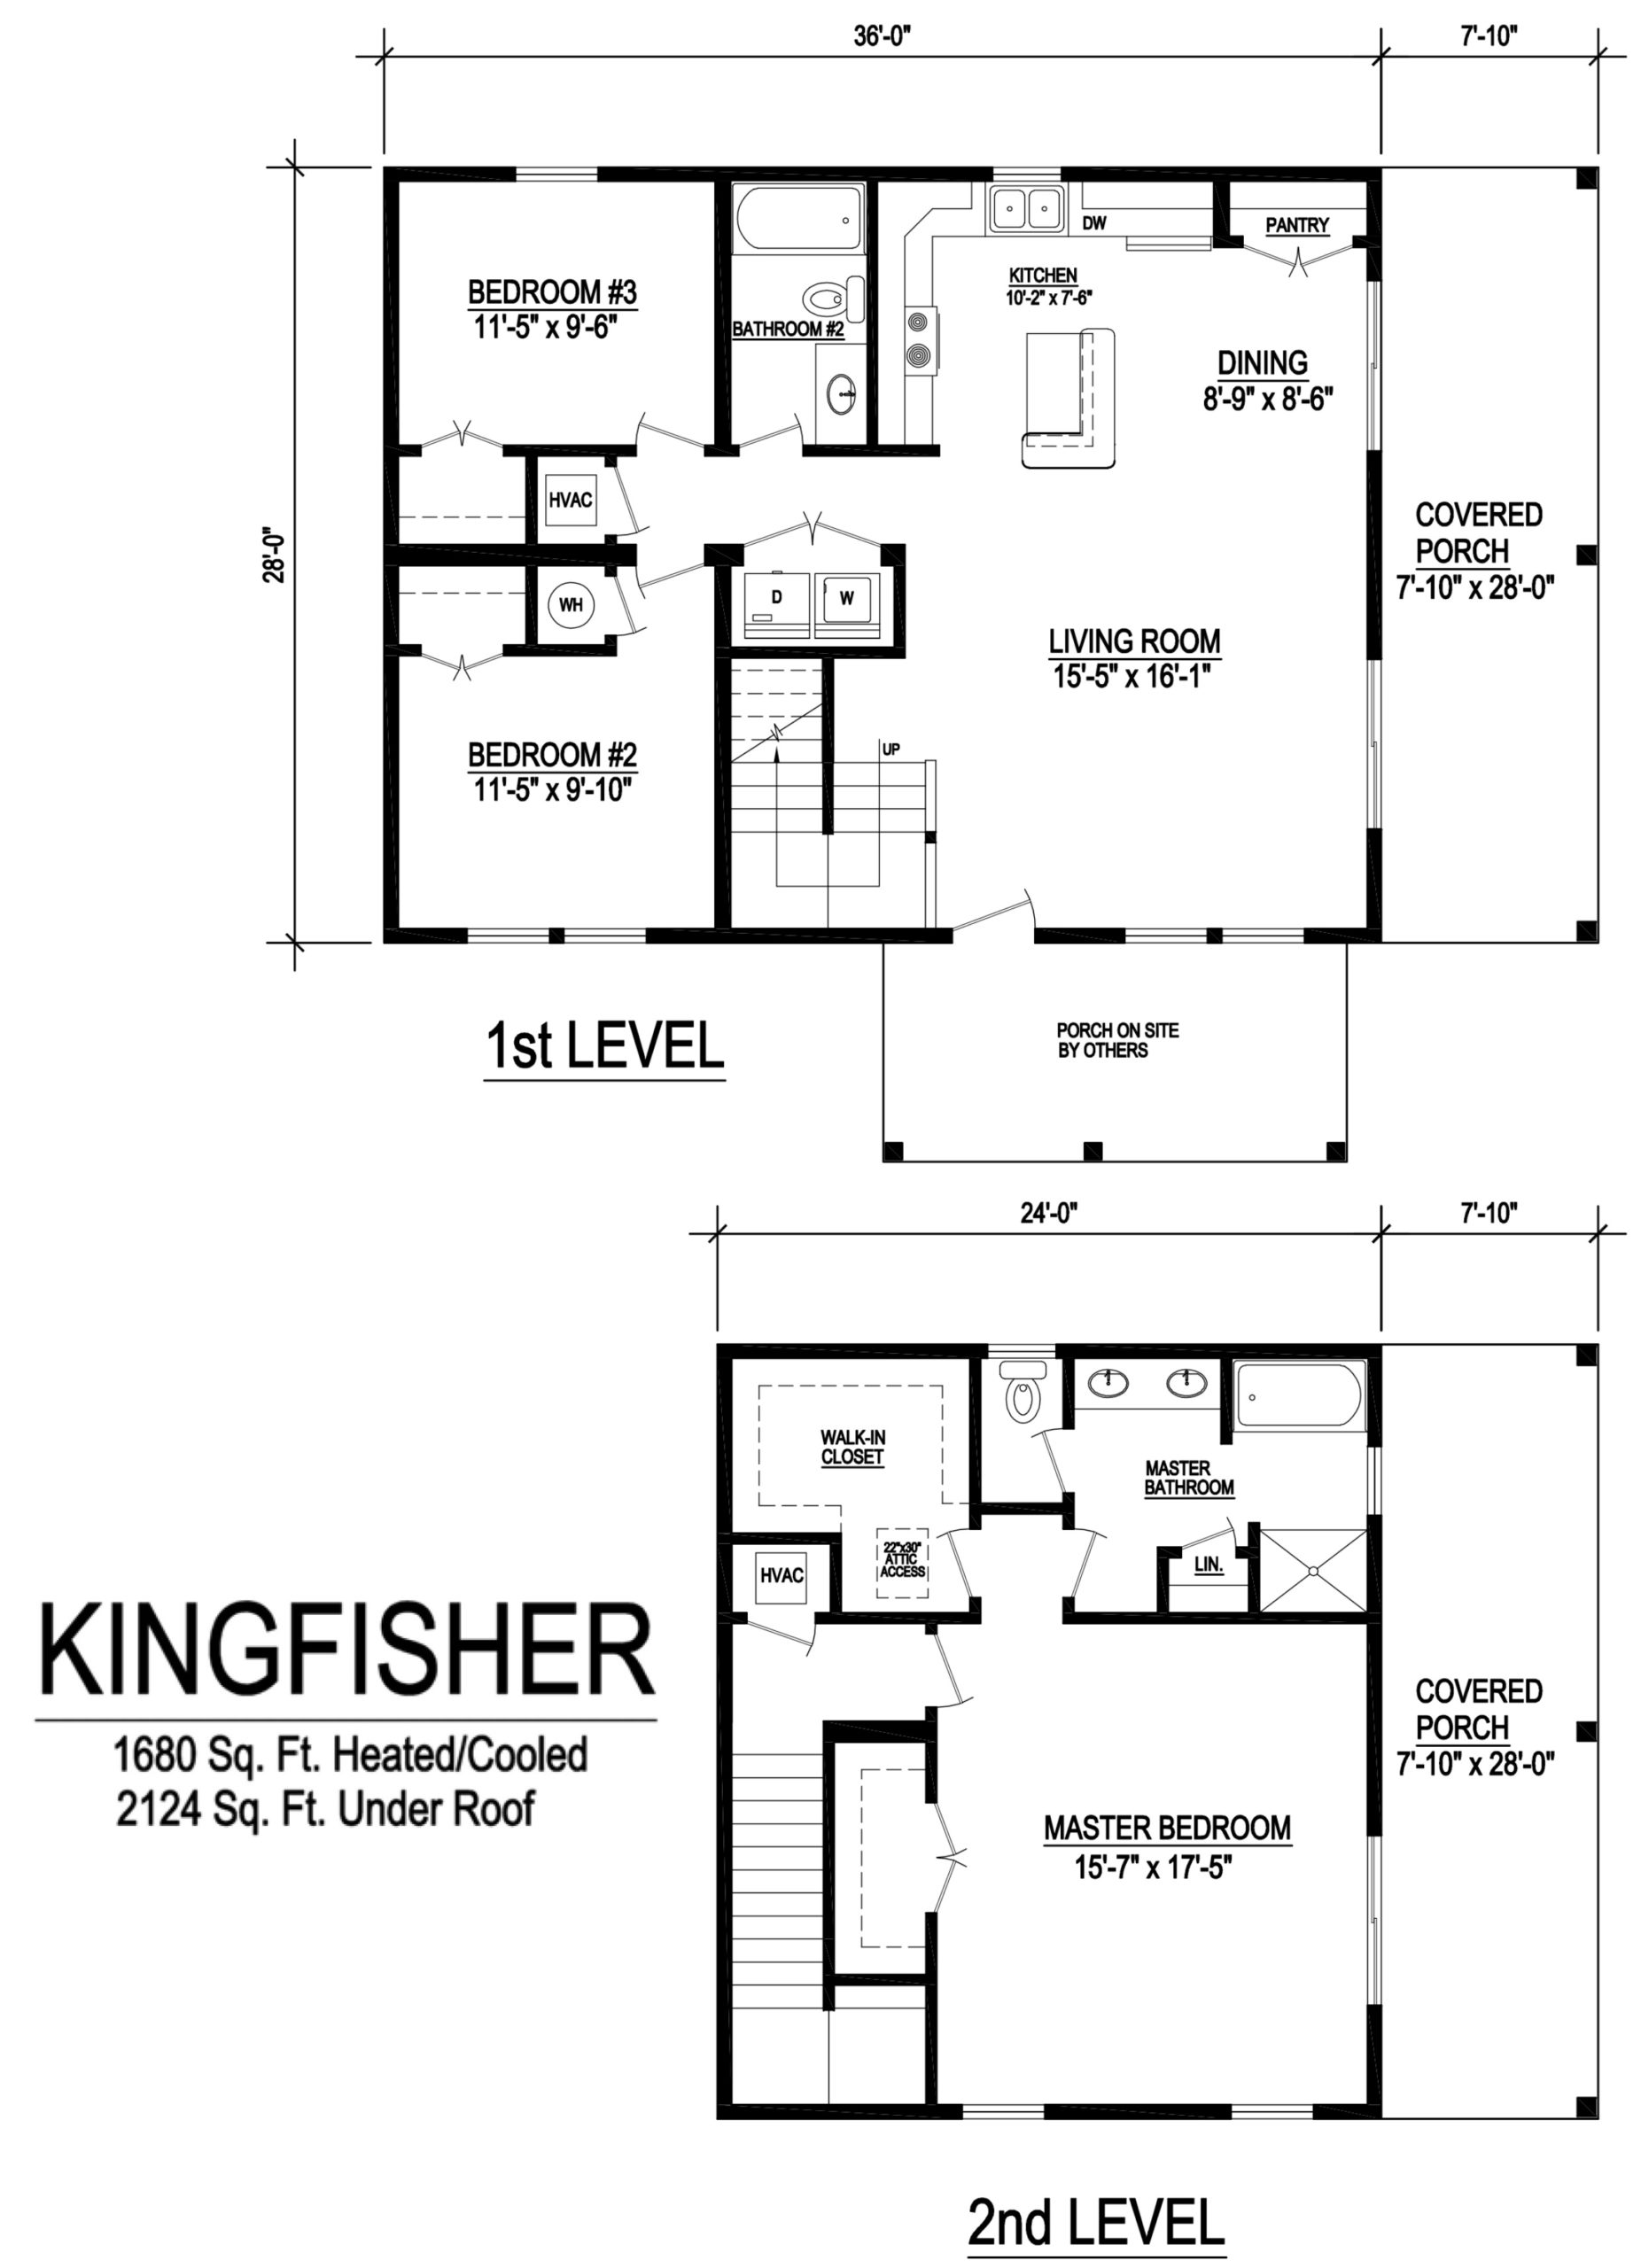 kingfisher modular home floorplan